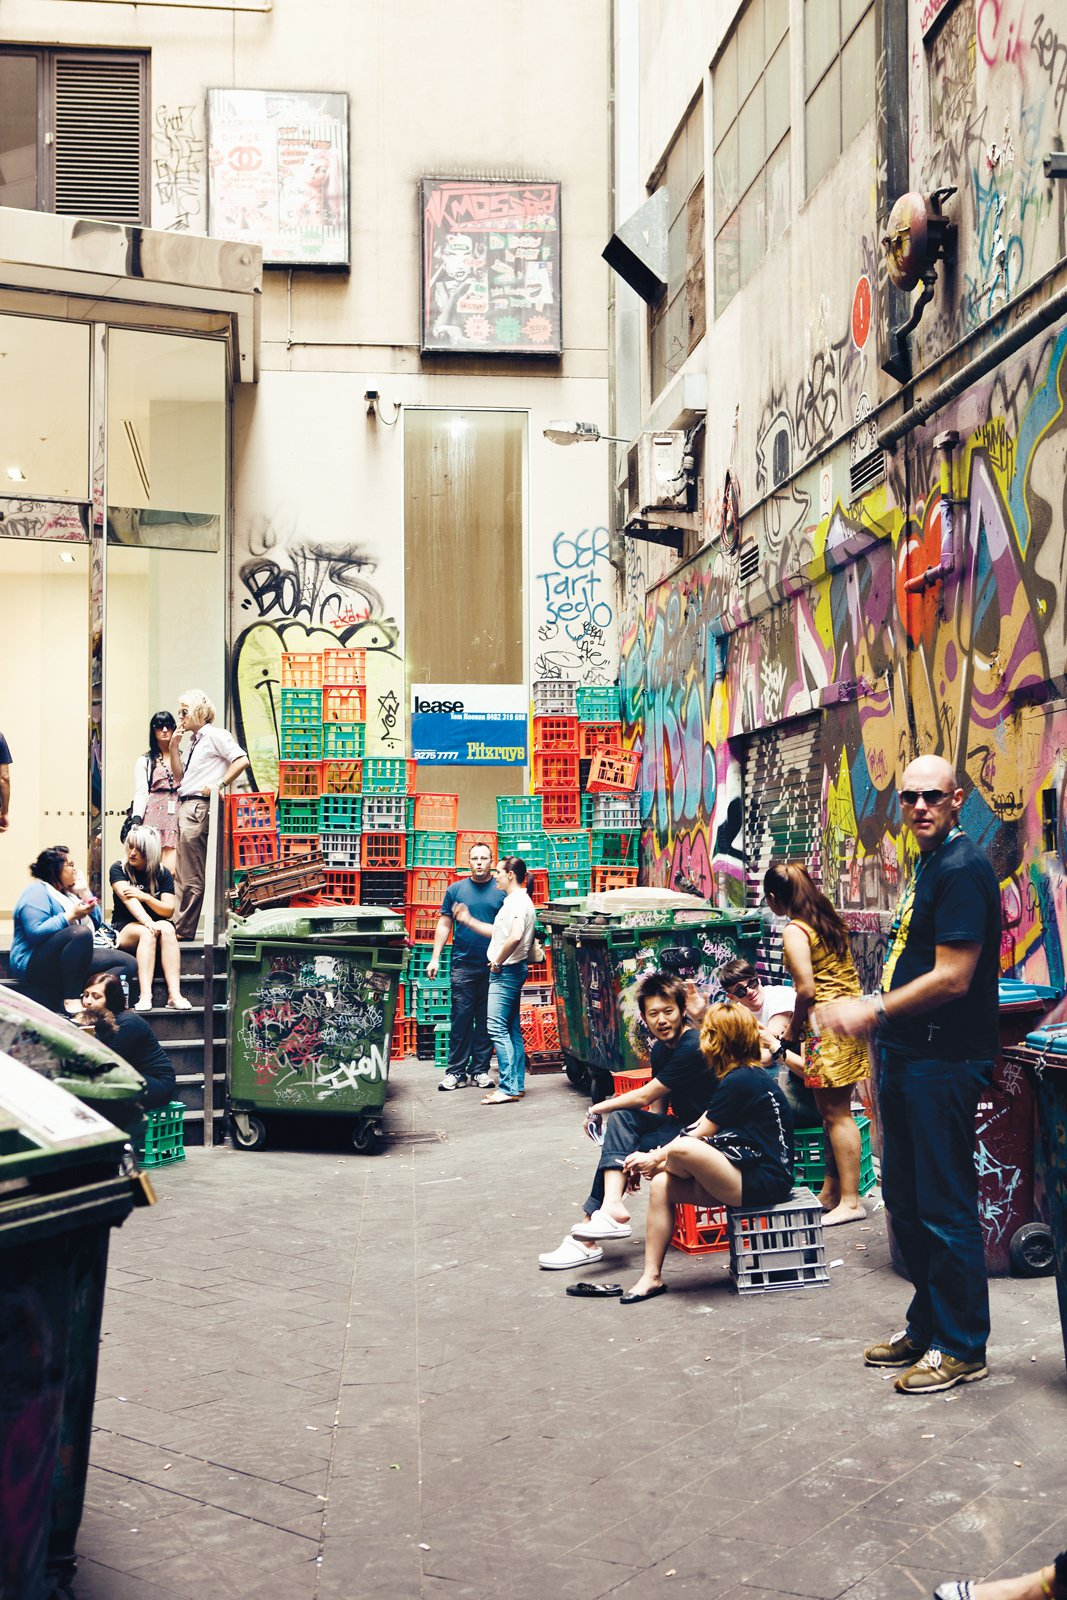 Centre Place and Flinders Lane  Photo 1 of 24 in Exploring Melbourne, Australia